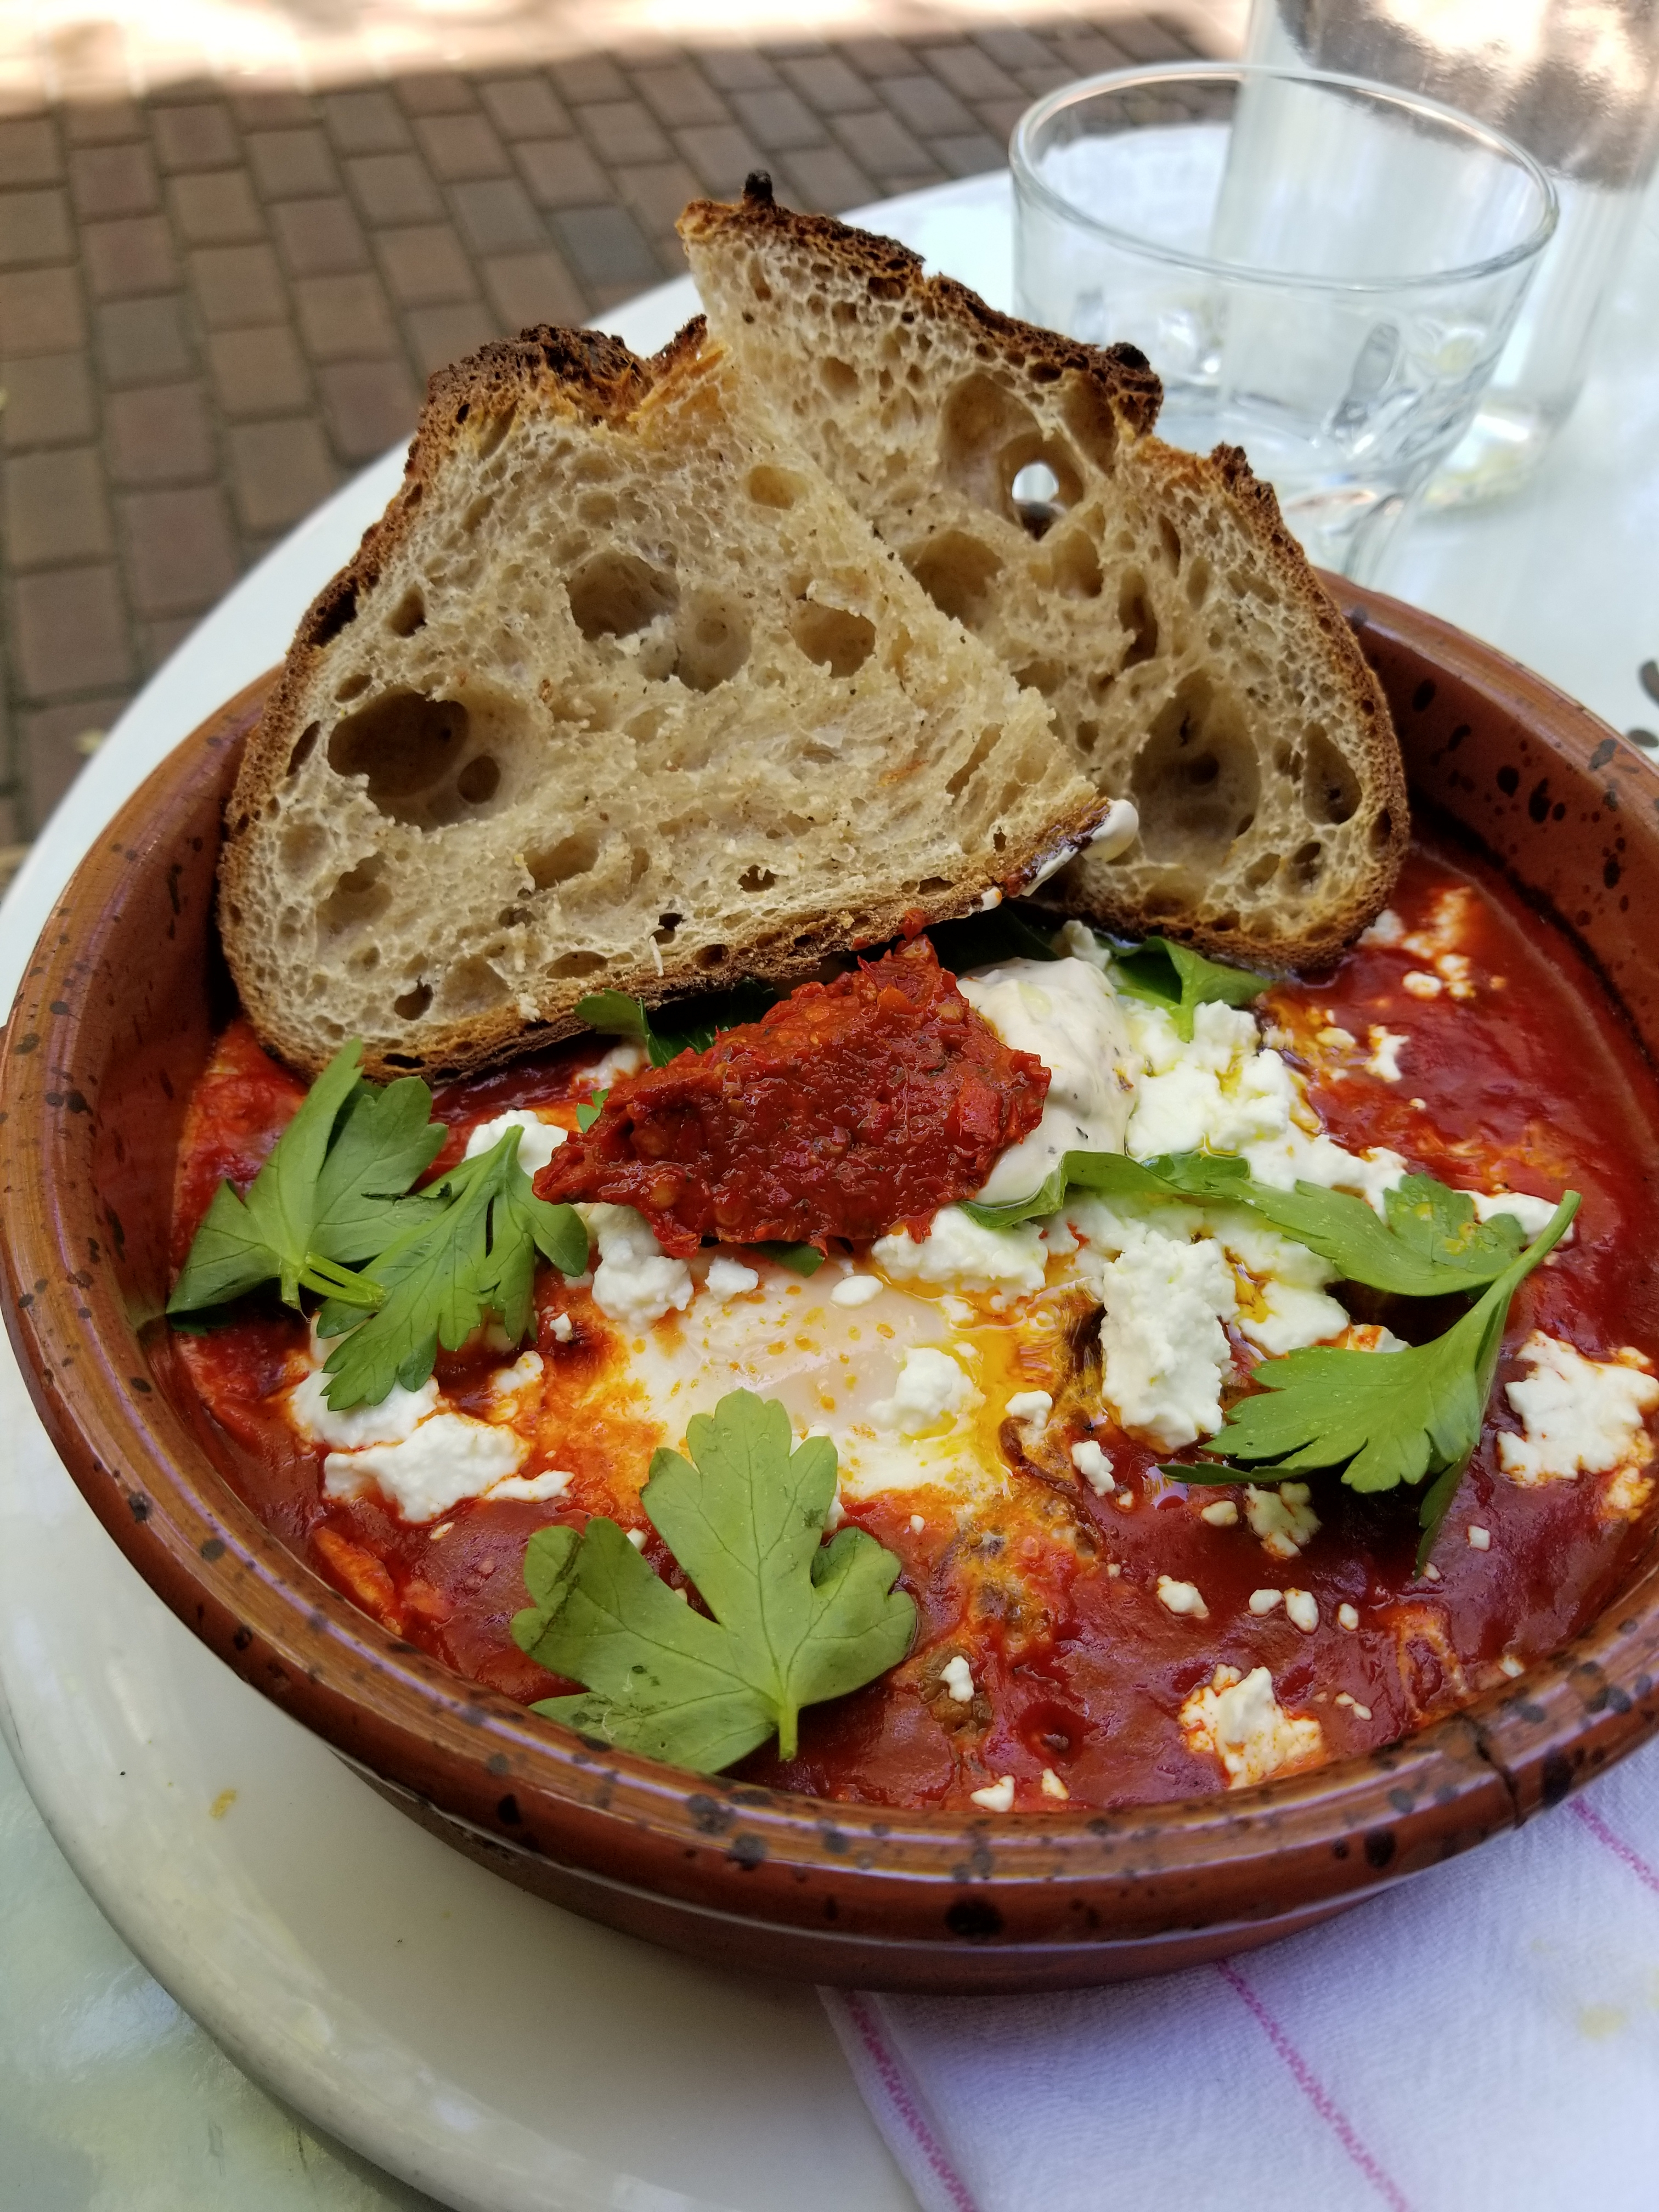 Special of the Day - Baked Eggs in a Tomato Sauce